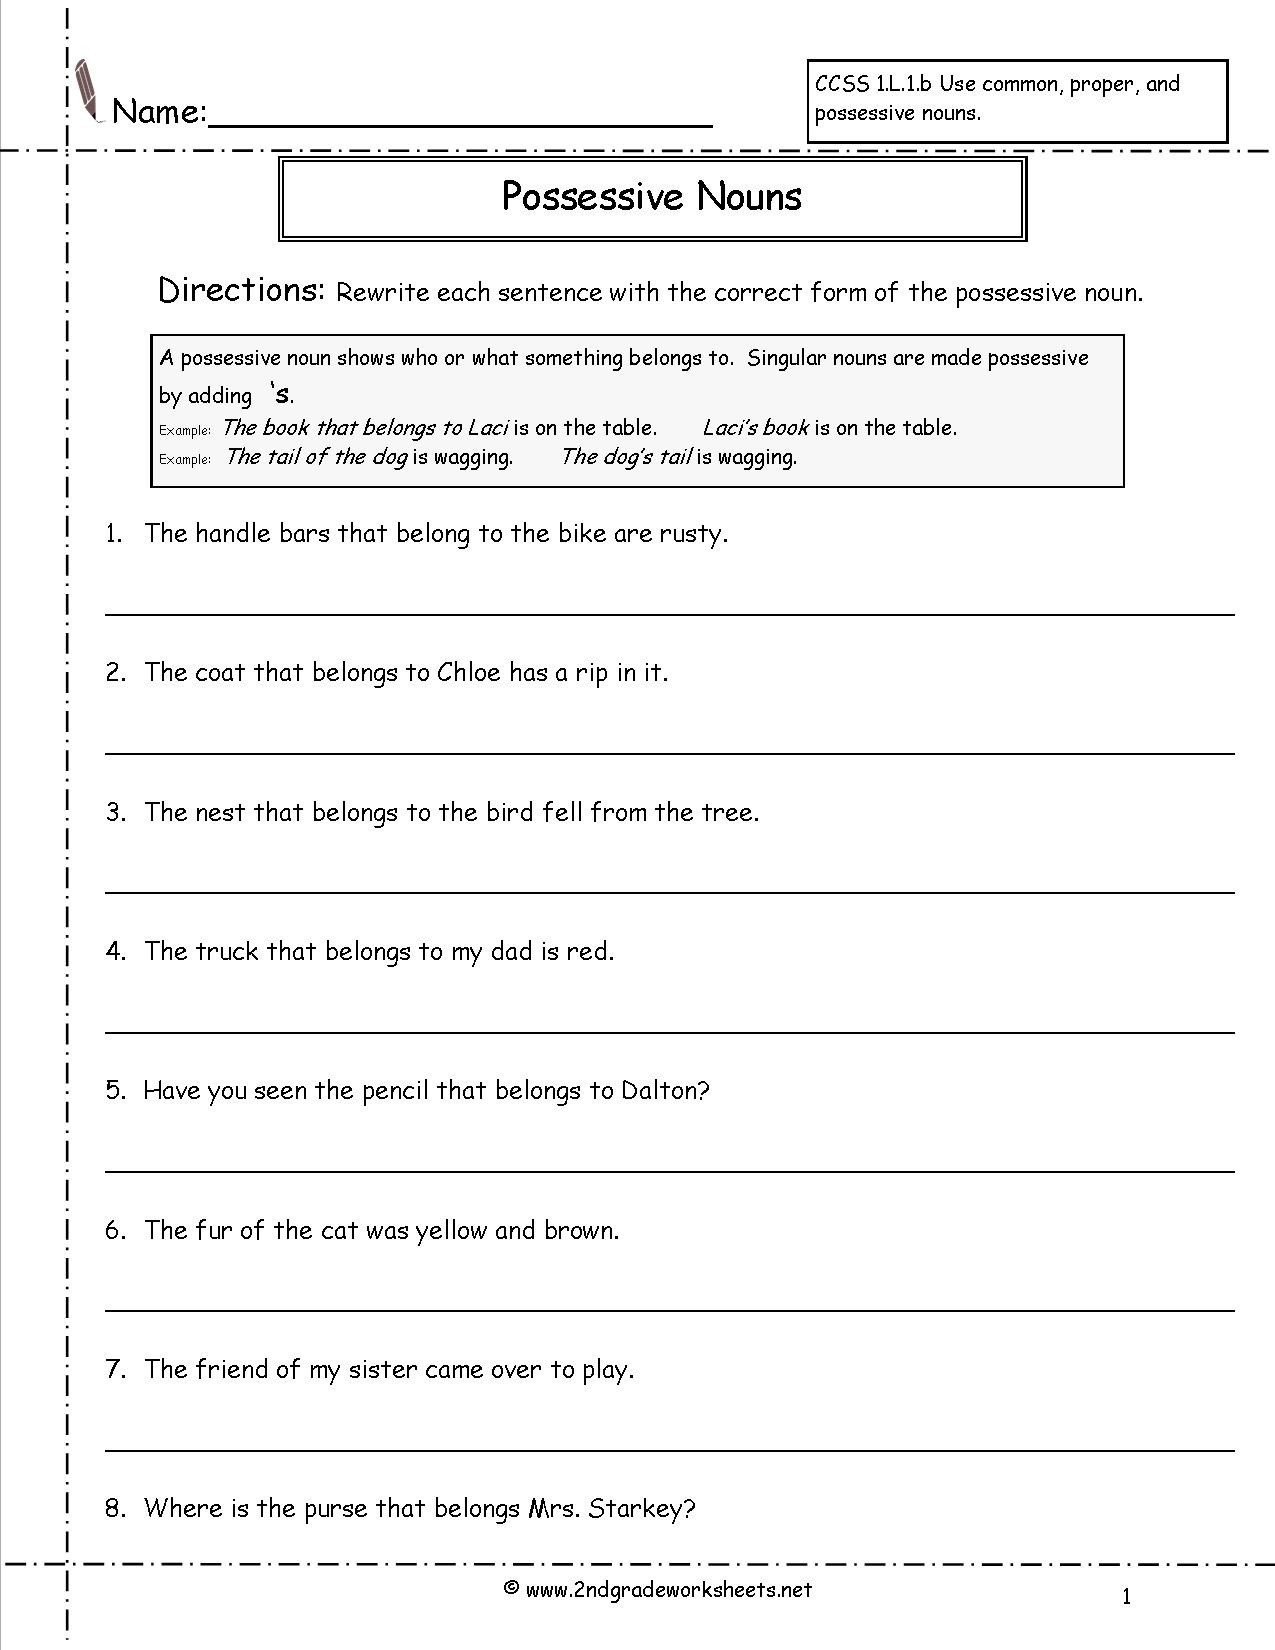 Pronoun Worksheets for 2nd Graders Free Pronoun Worksheet for 2nd Grade